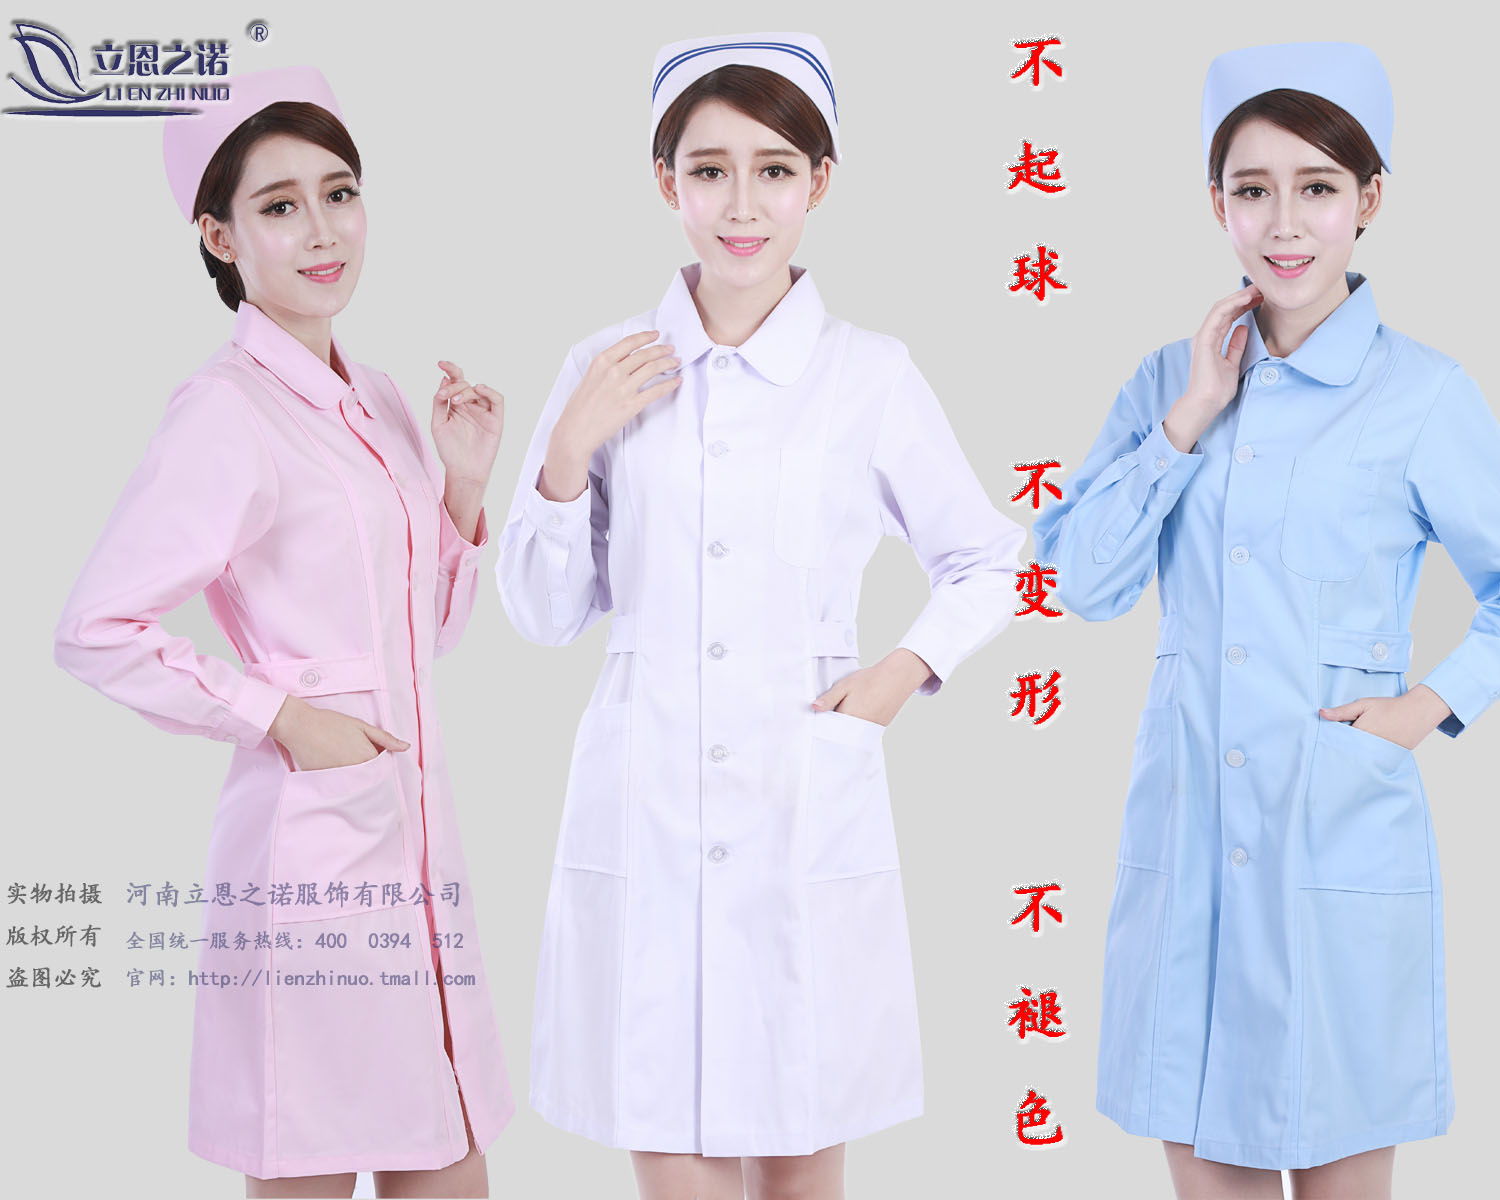 En li connaught nurse doll collar sleeved winter beauty service immunol clothes dentistry hospital uniforms